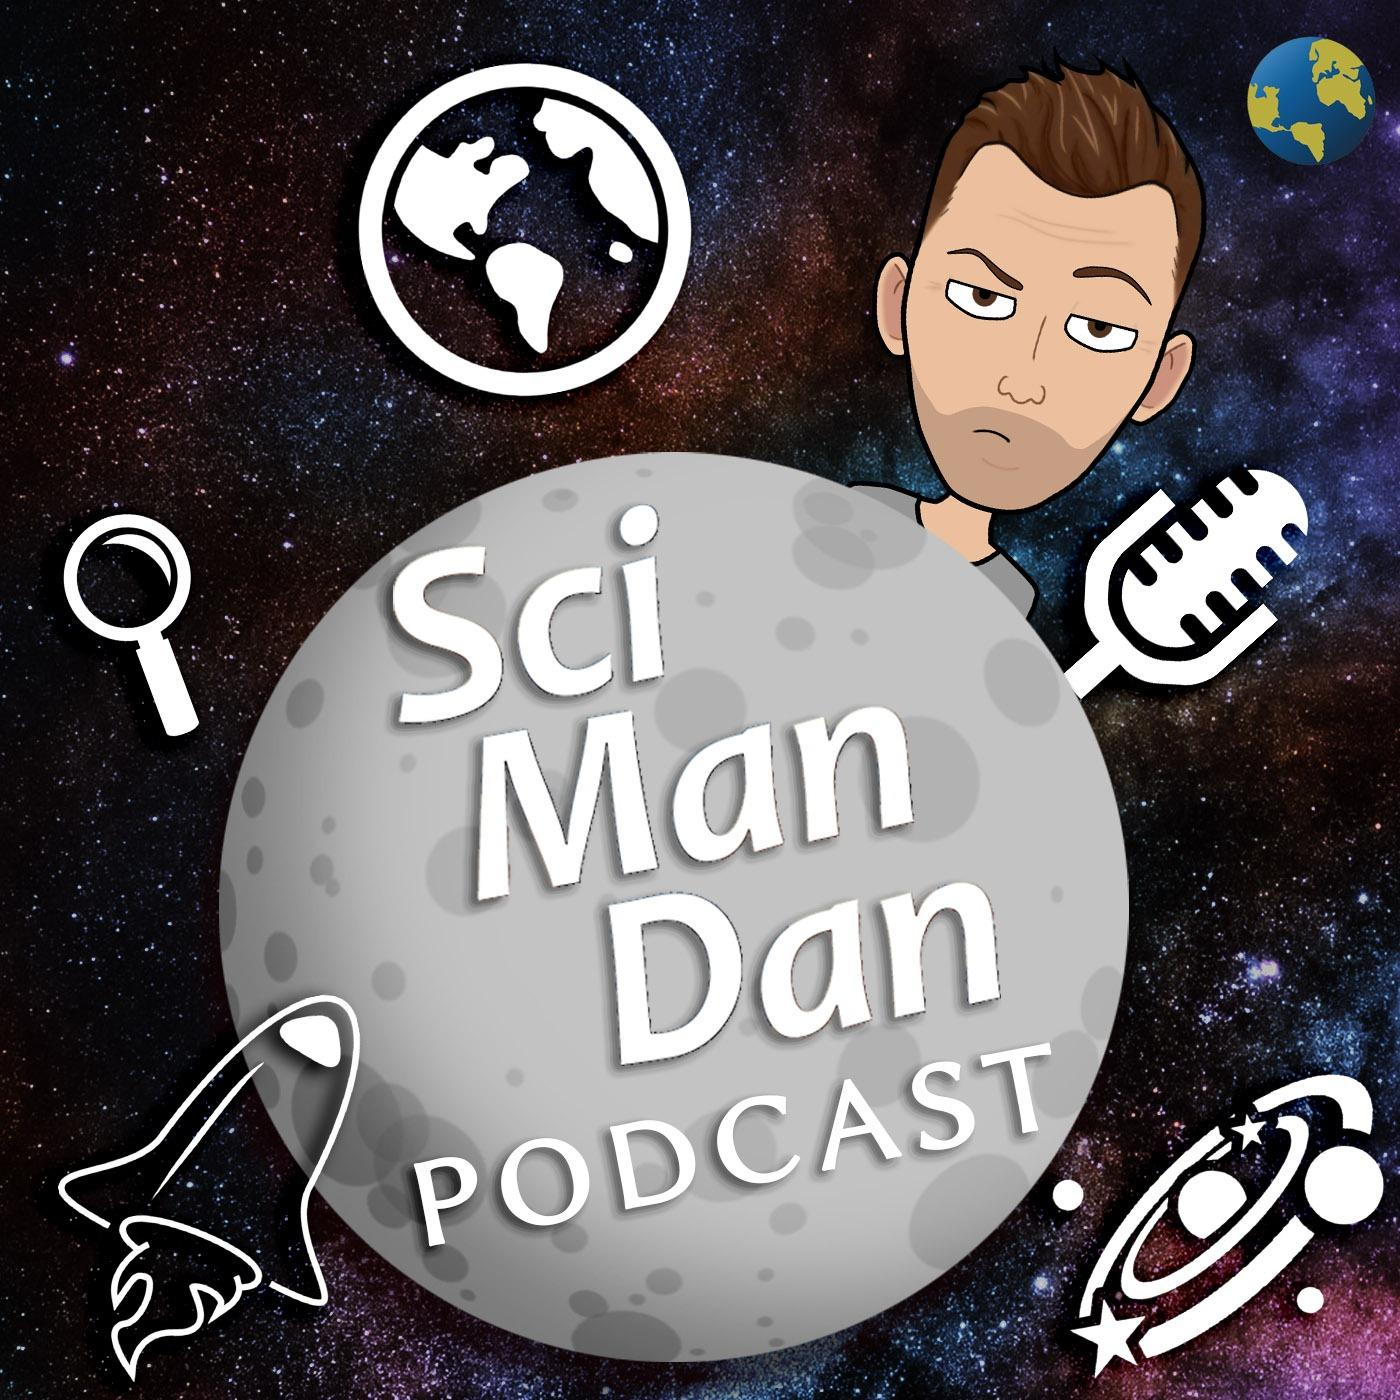 The SciManDan Podcast